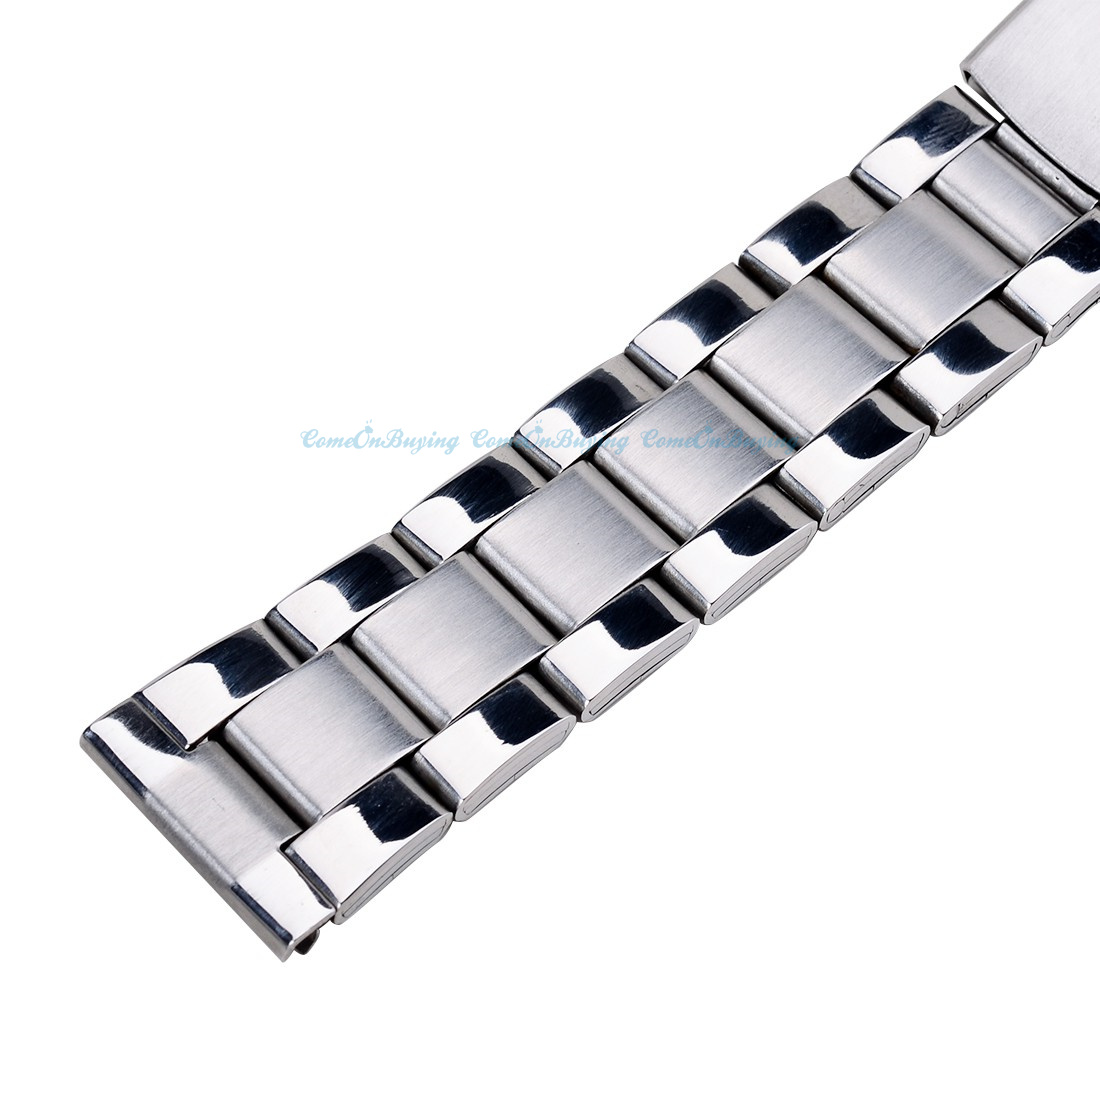 1 pcs unisex 3 styles stainless steel watch band bracelet metal strap clasp ebay. Black Bedroom Furniture Sets. Home Design Ideas